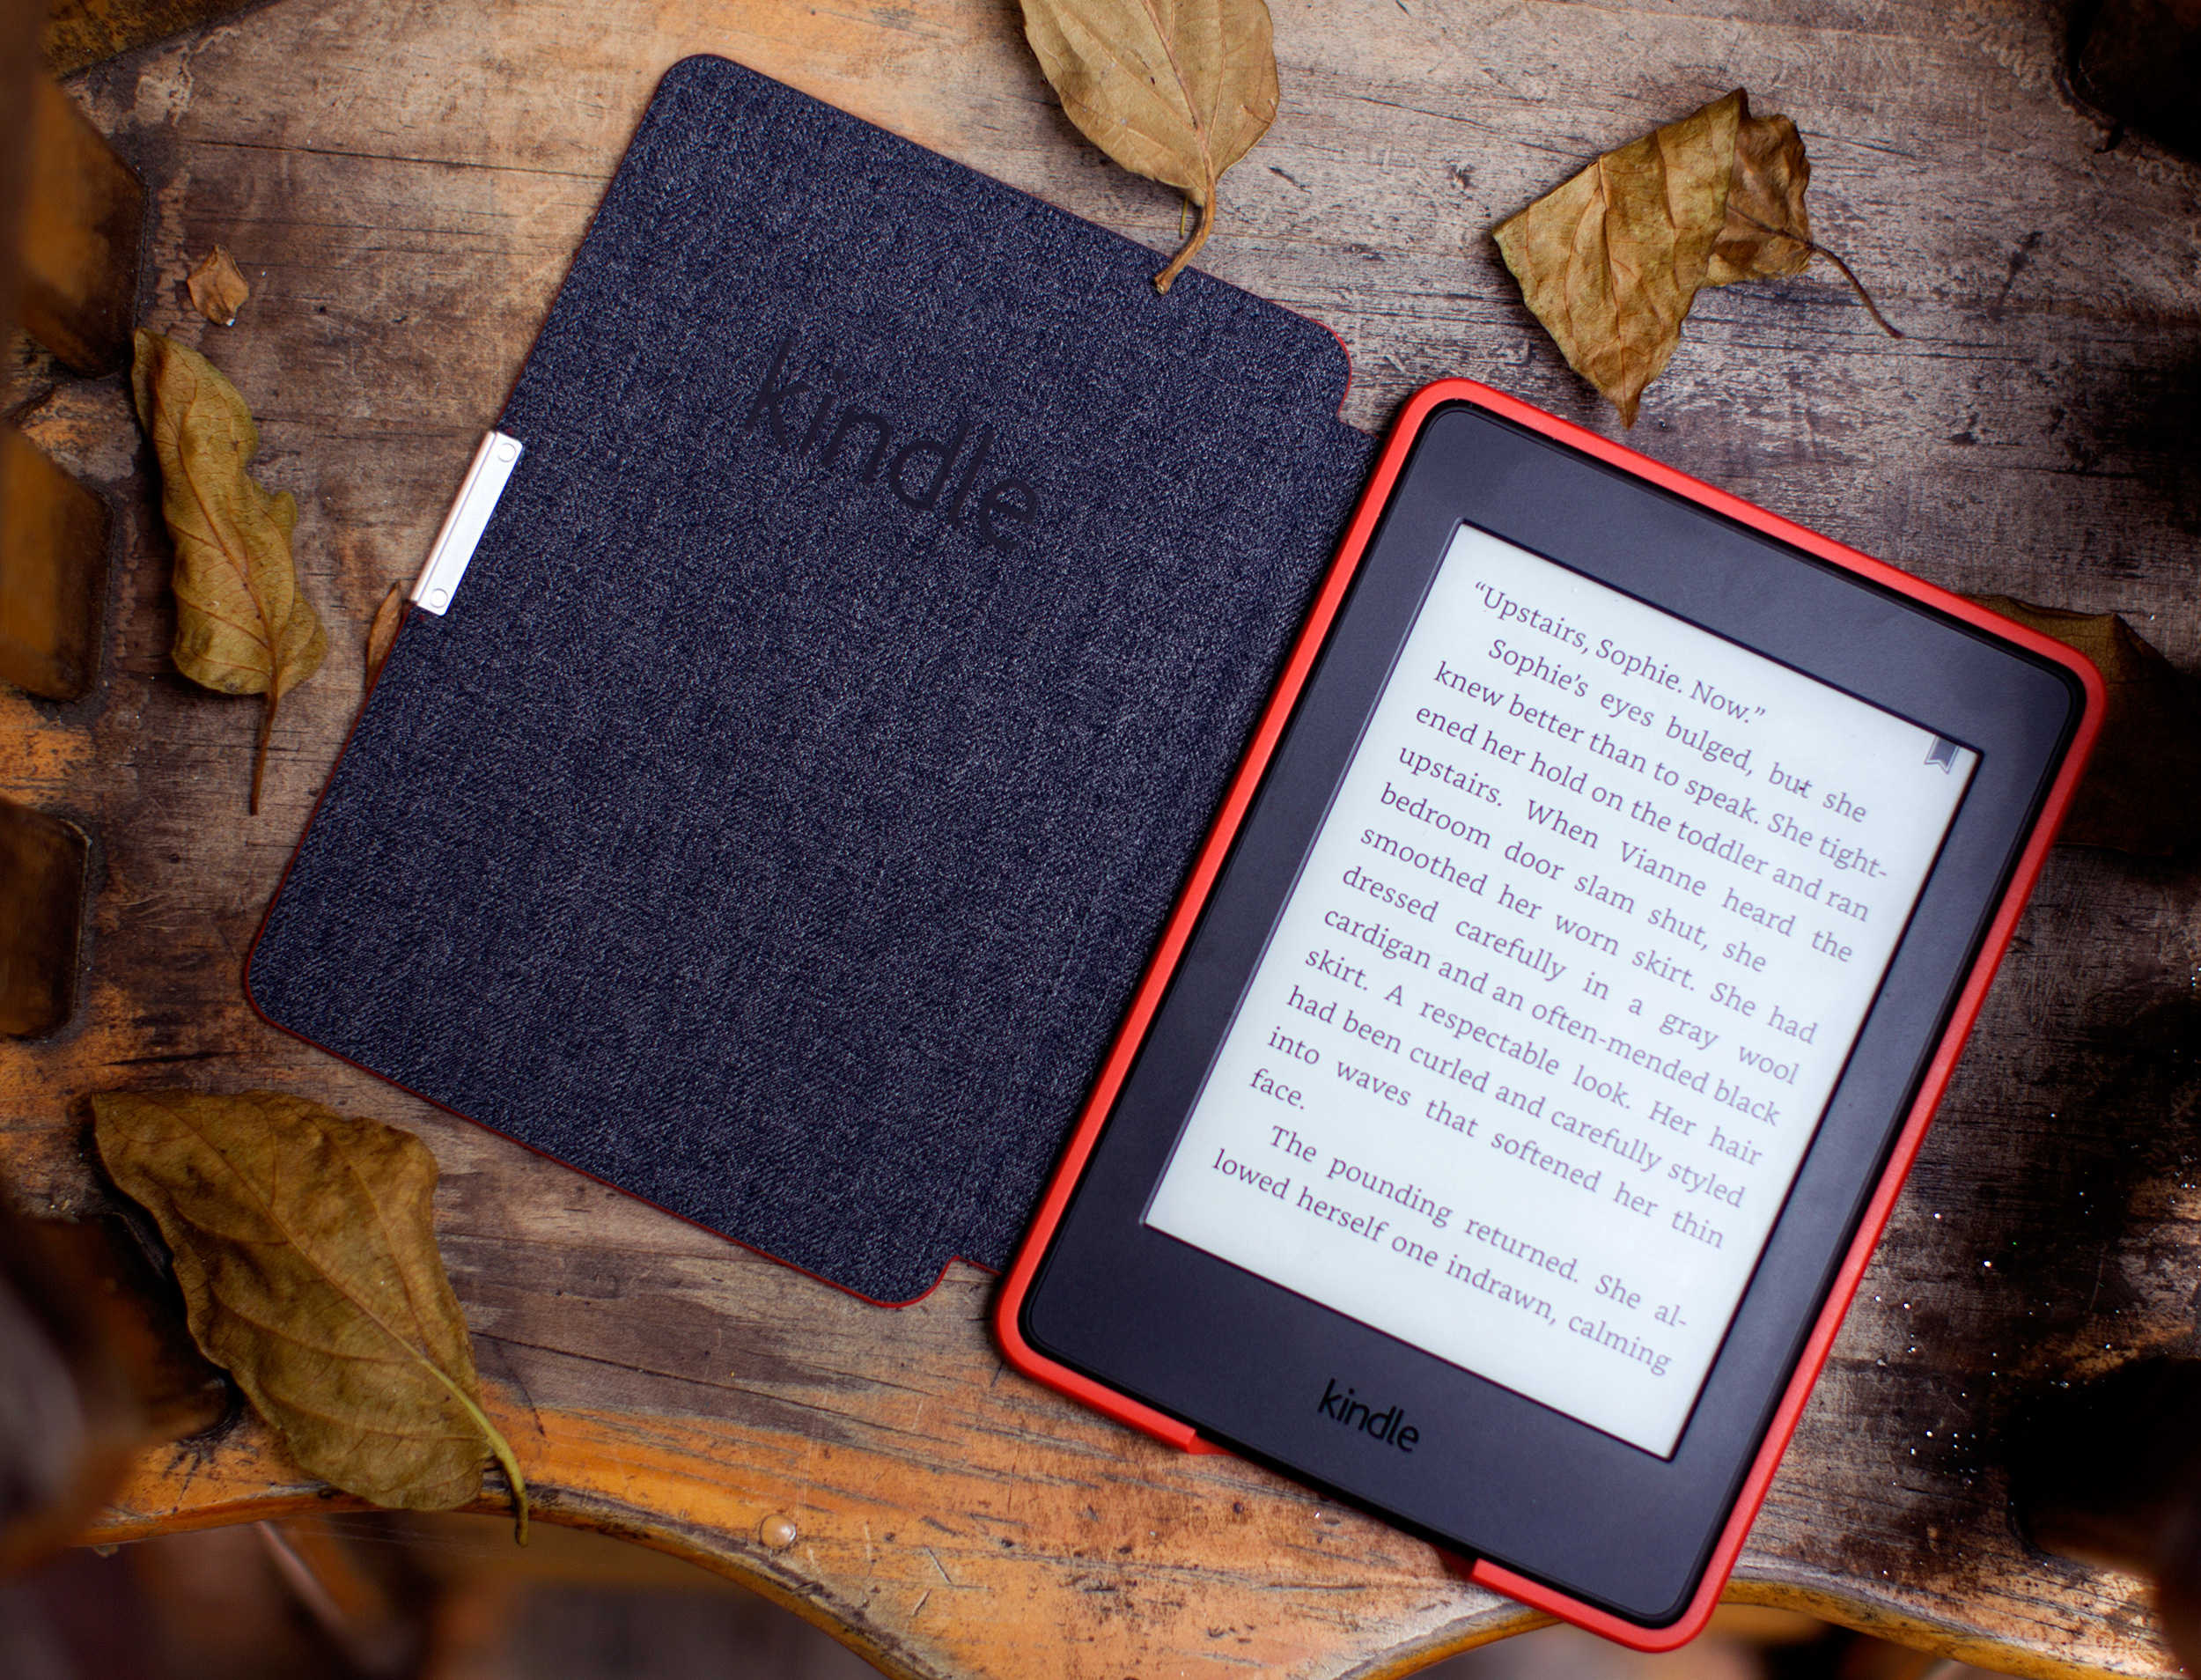 Get a gazillion books at your fingertips day and night with the Kindle Paperwhite.